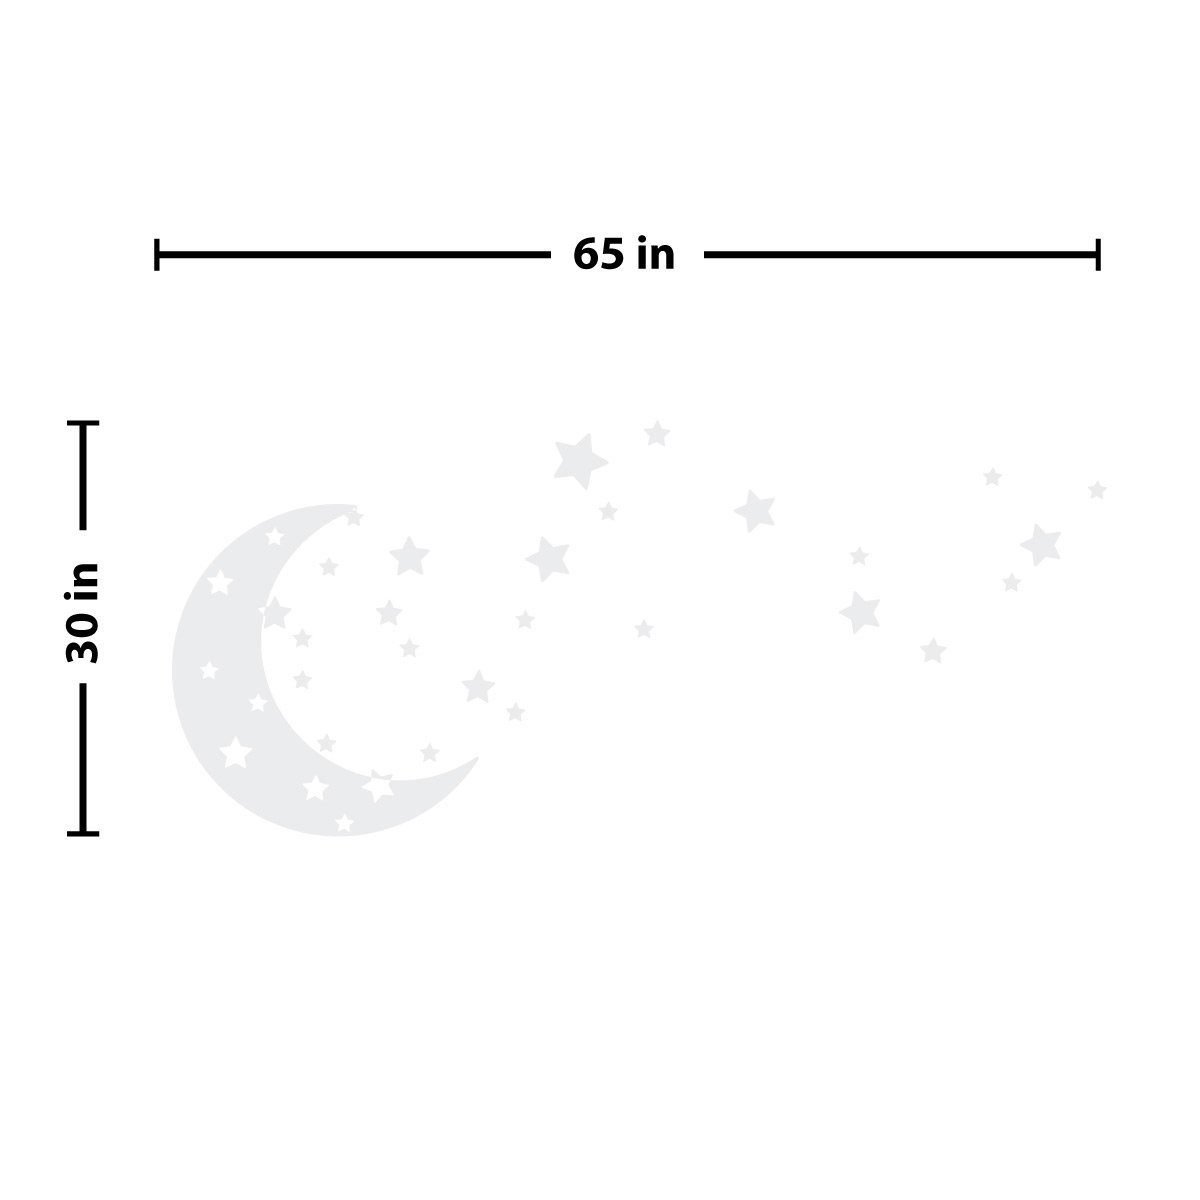 Moon and Stars Night Sky Vinyl Wall Art Decal Sticker Design for Nursery Room DIY Mural Decoration (White, 30x65 inches) by The Decal Guru